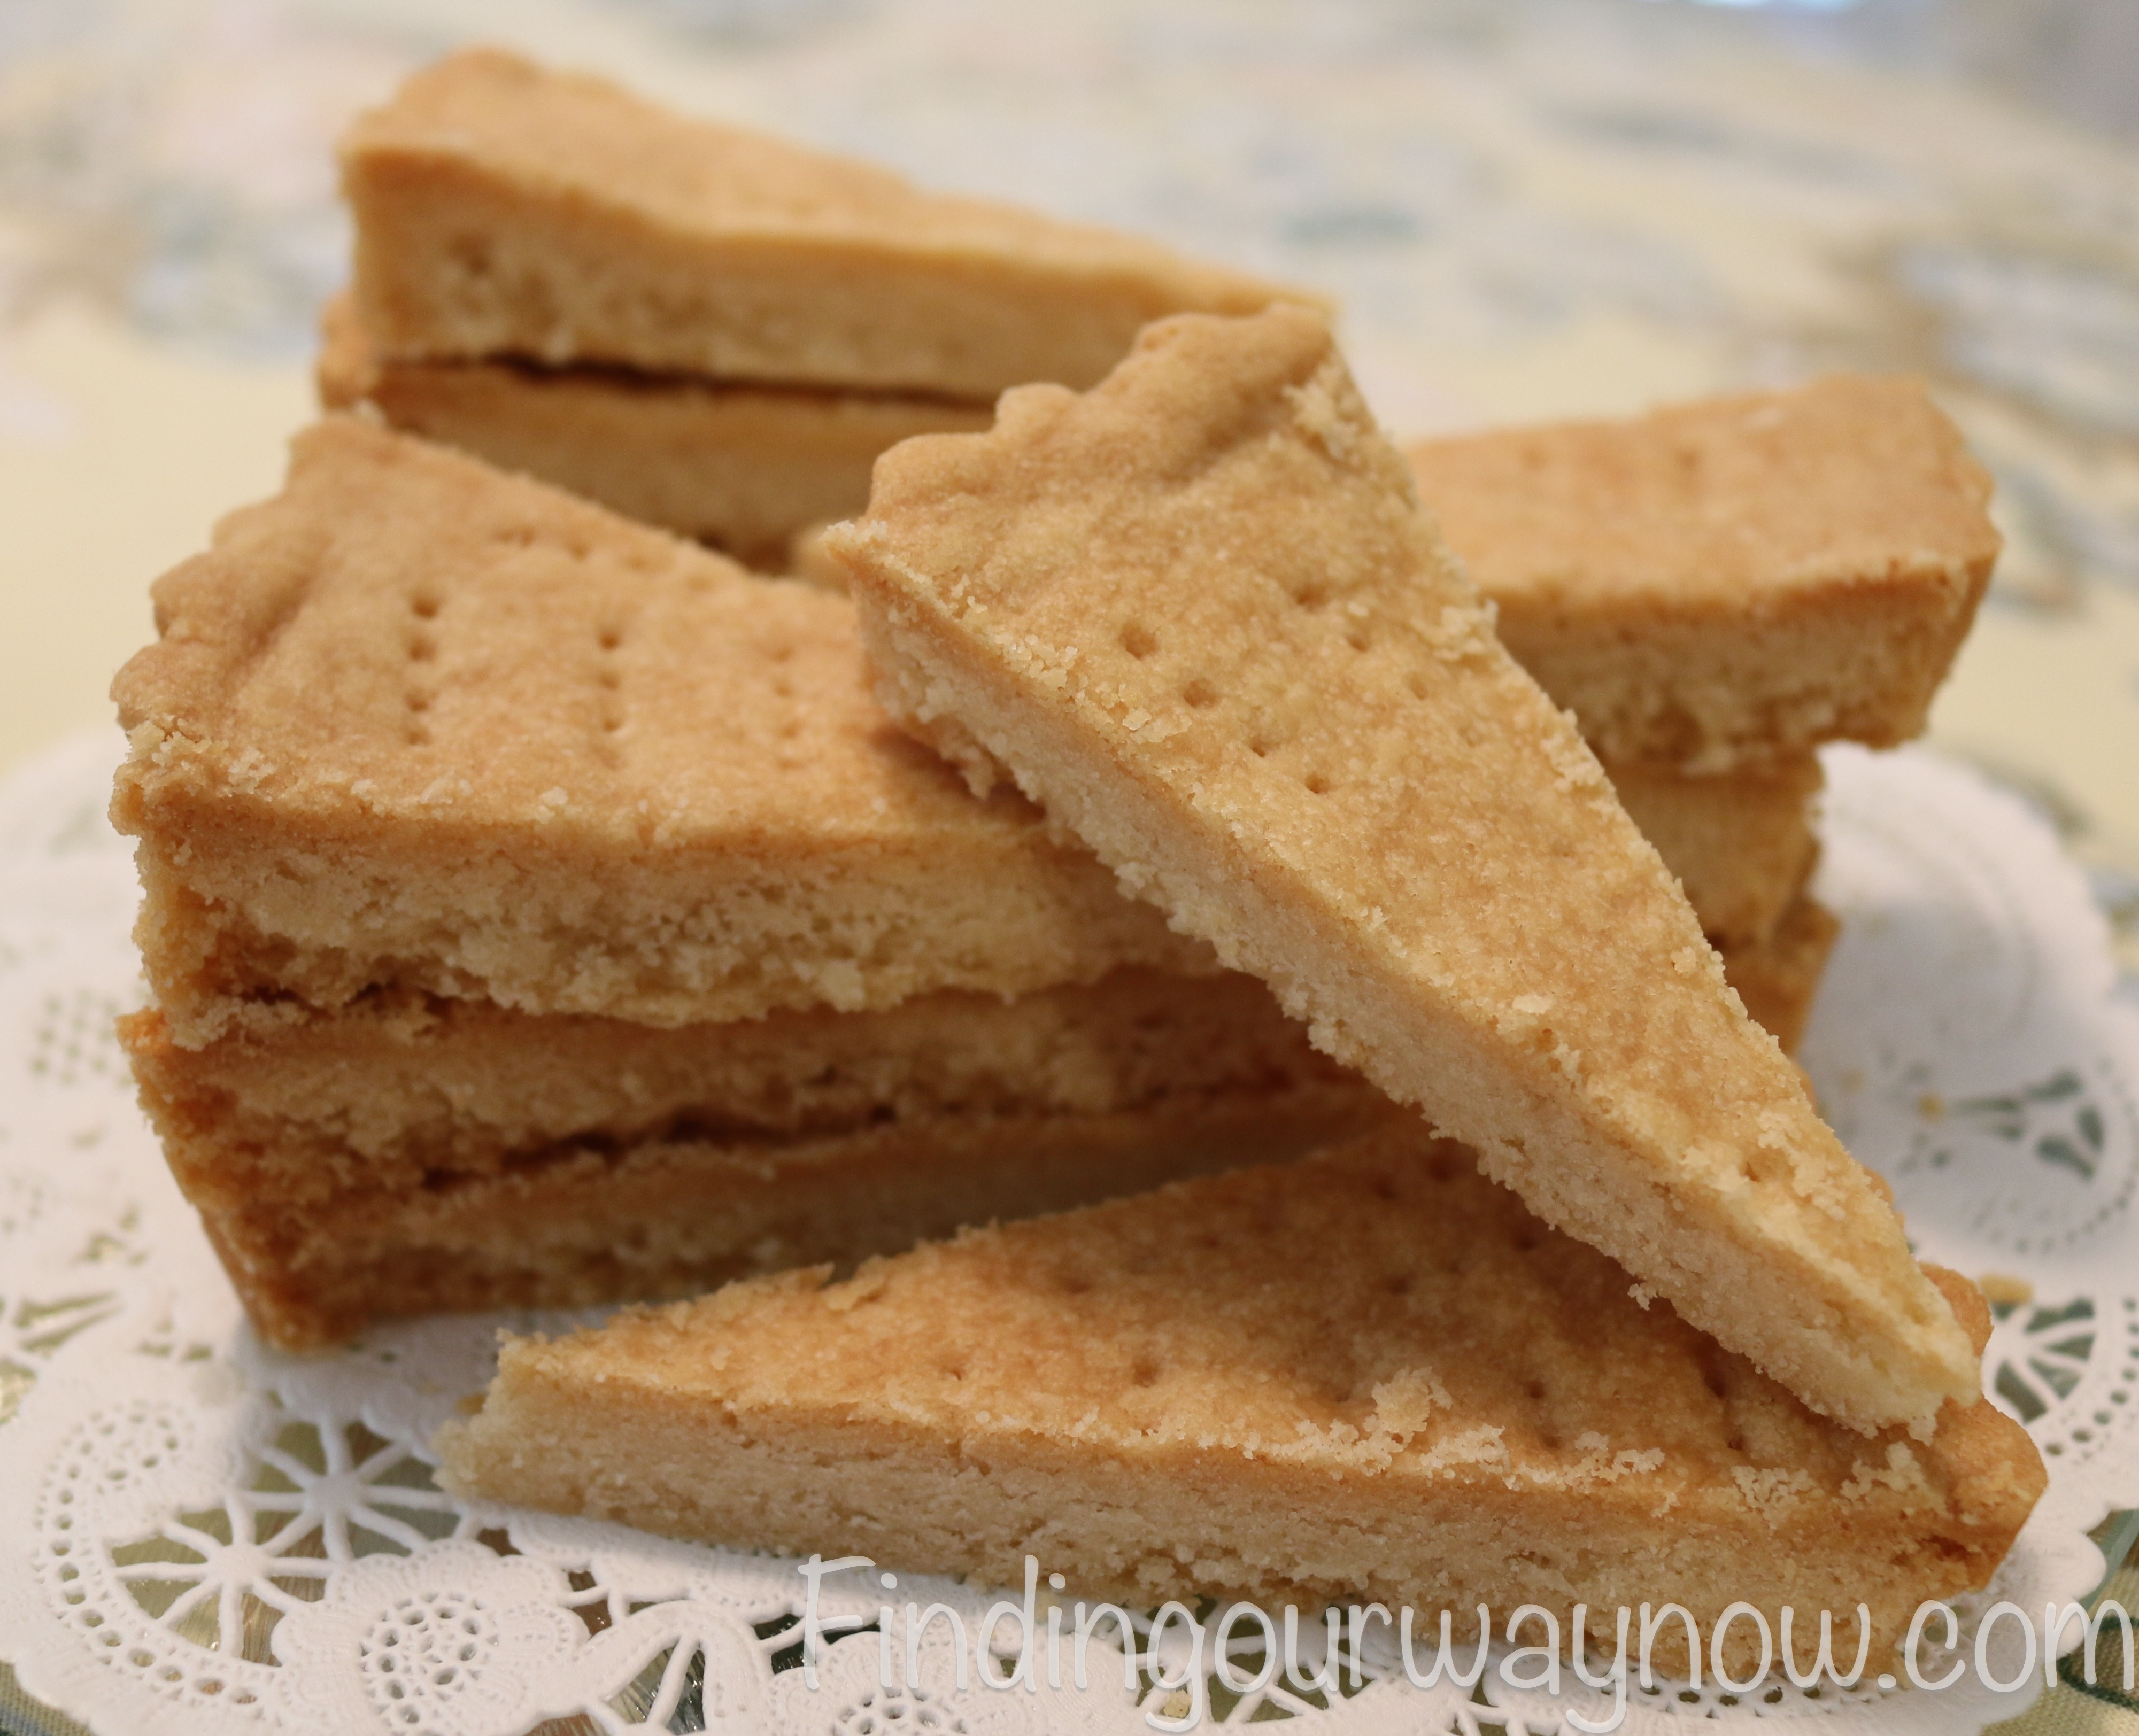 Scottish Shortbread Recipe Recipe Finding Our Way Now